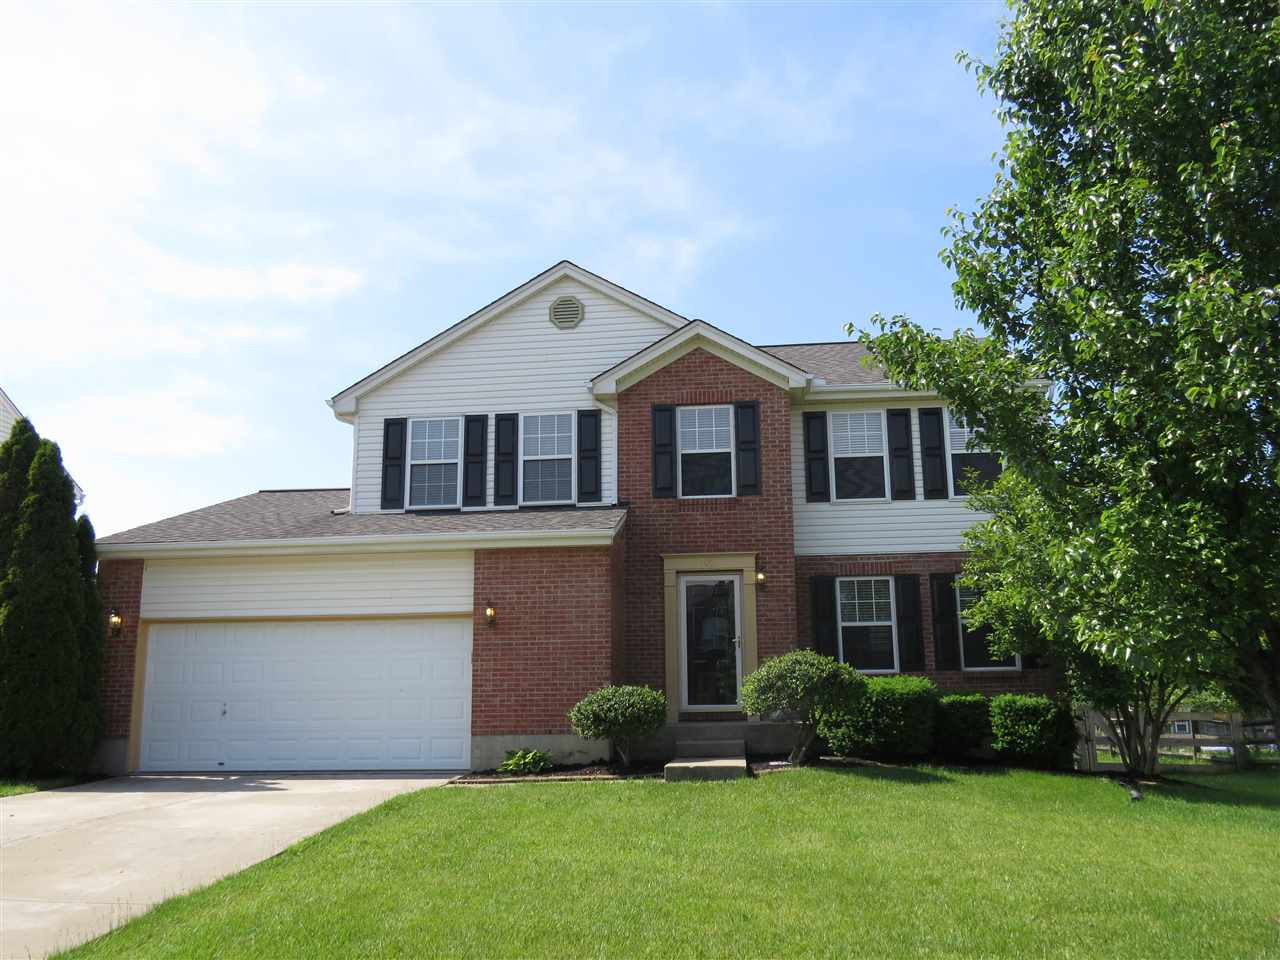 Photo 1 for 2053 Bluestem Dr Burlington, KY 41005